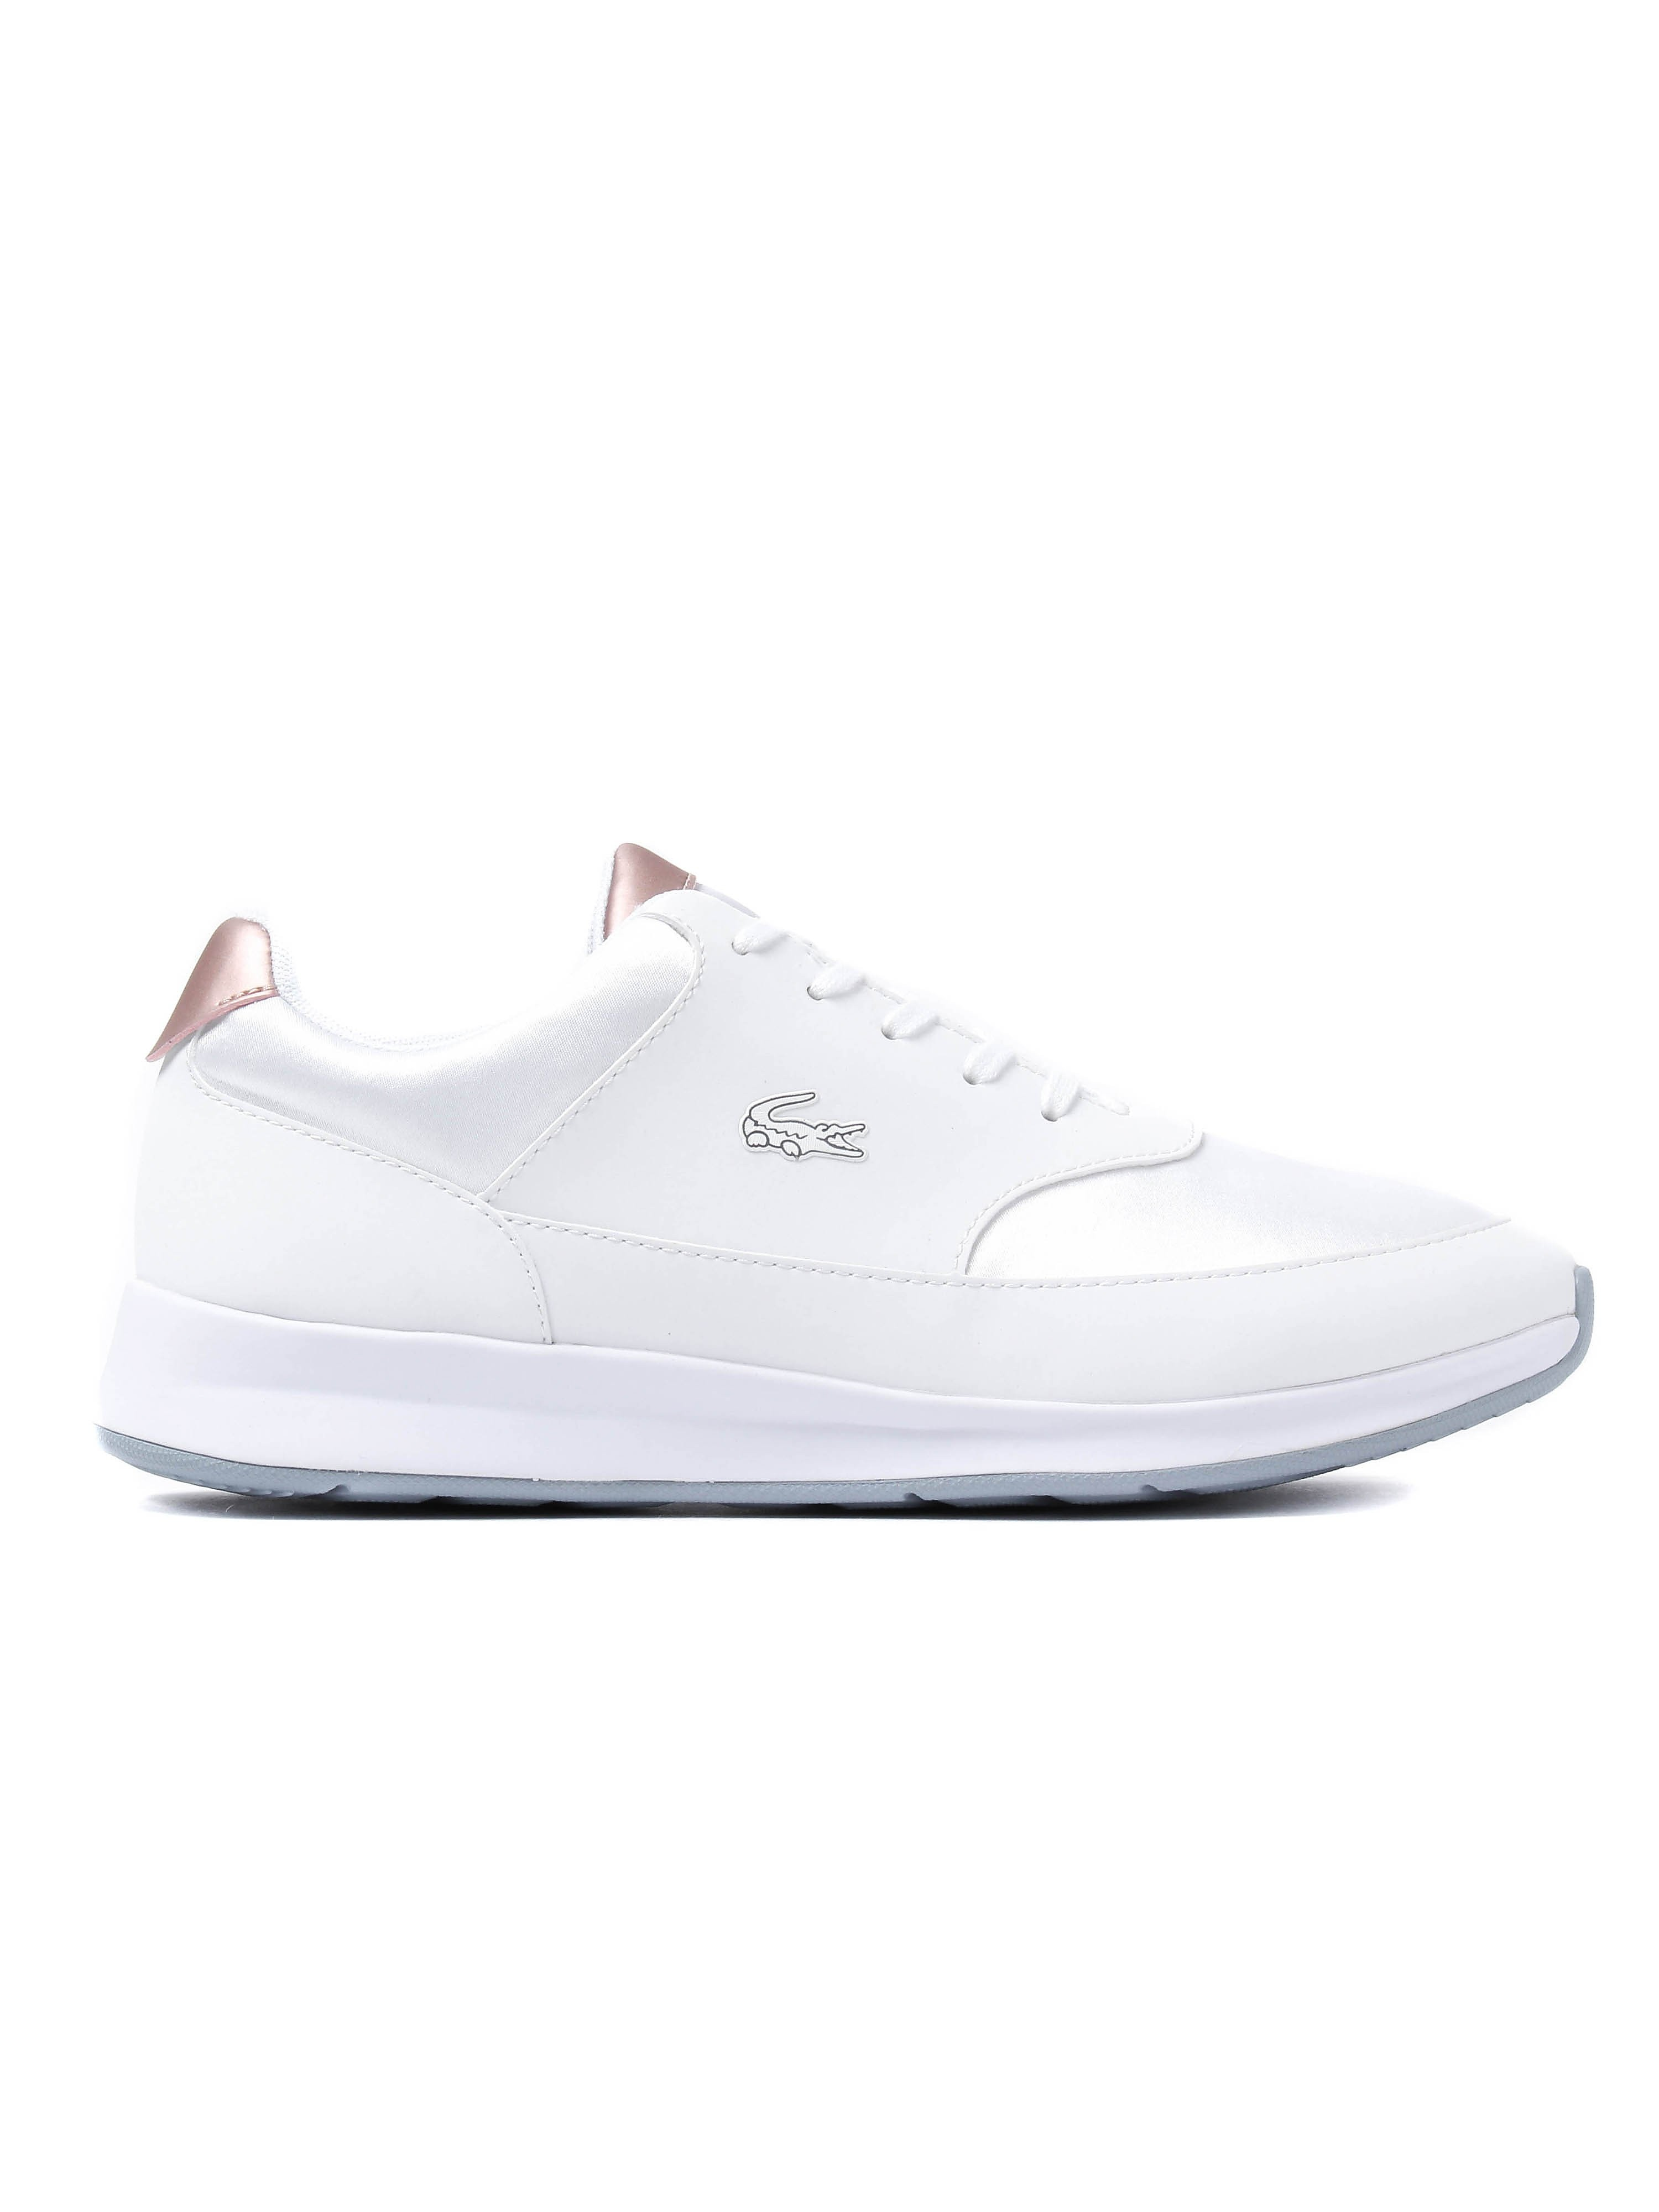 Lacoste Women's Chaumont 317 Trainer - White